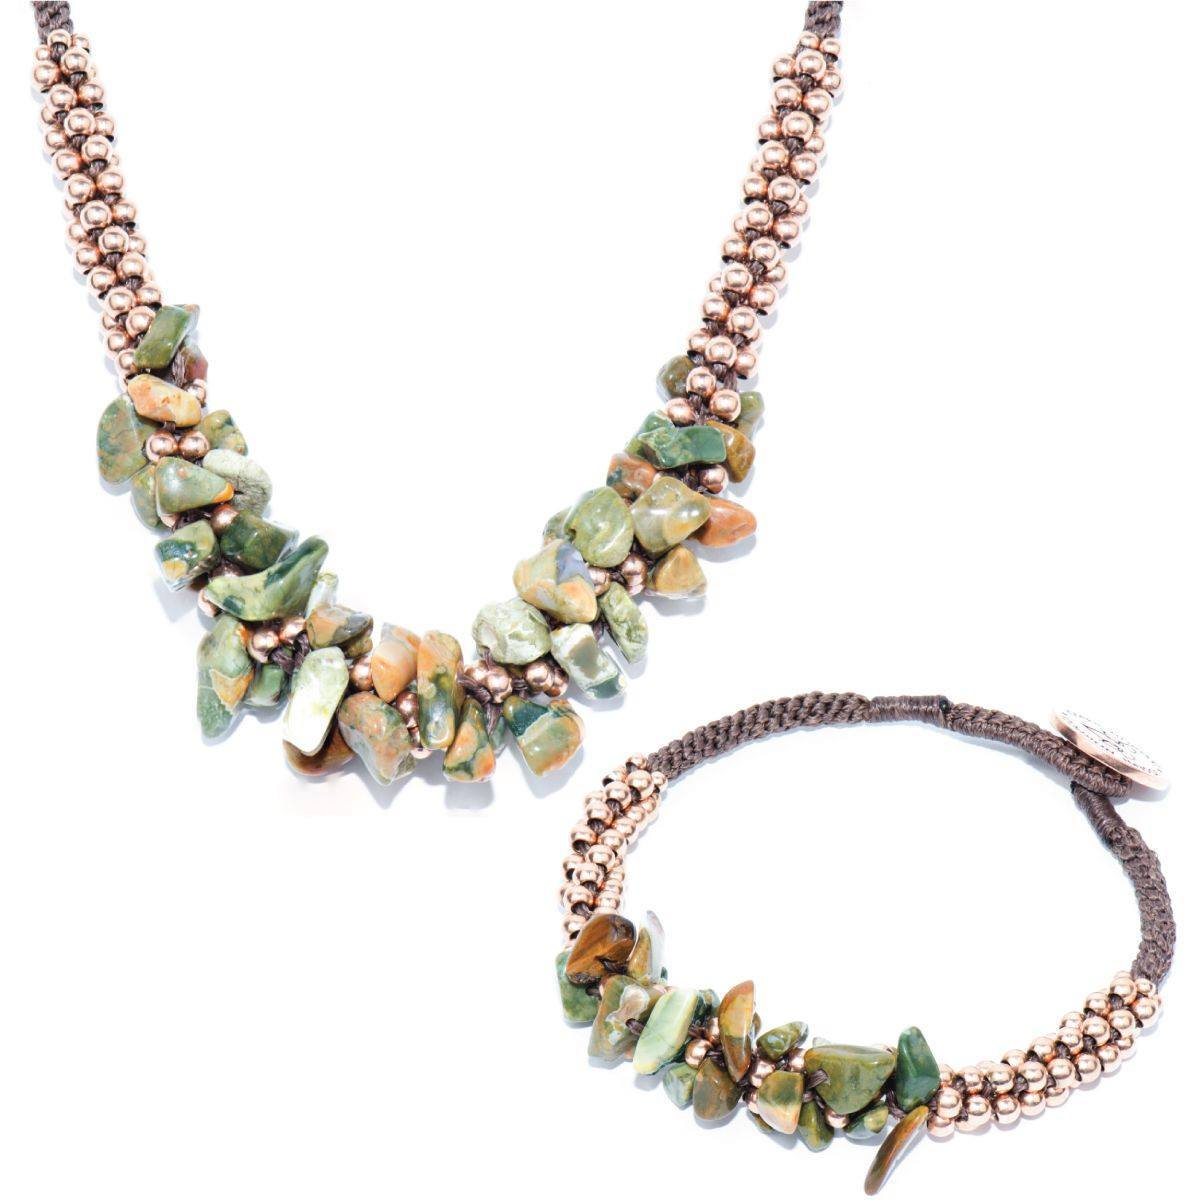 Woodland Agate Terra Bella Bracelet & Necklace Gift Set